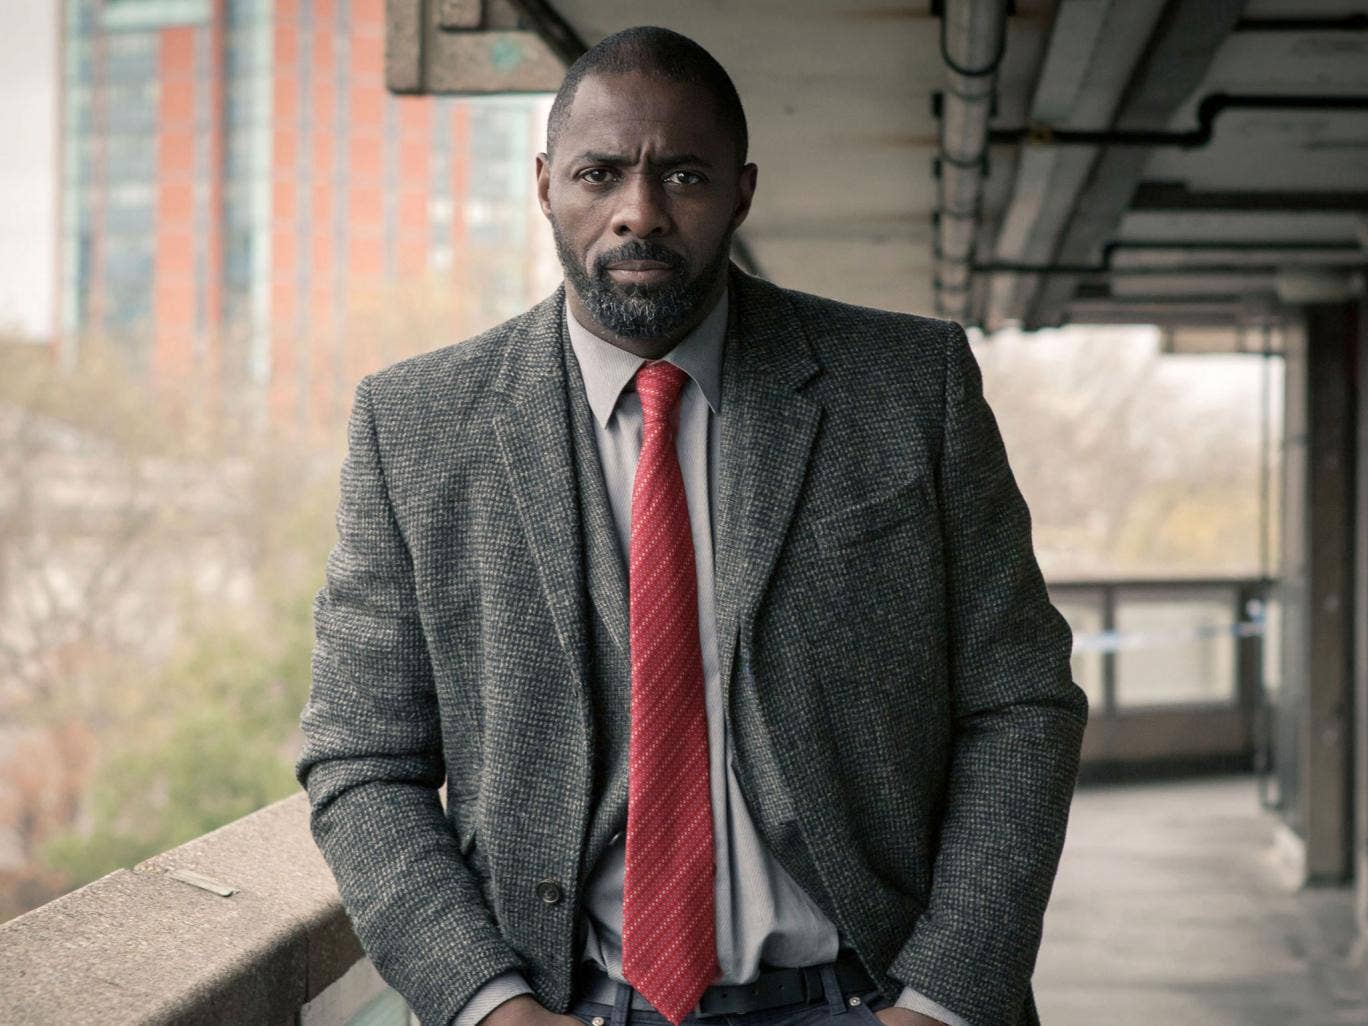 Look out: Broad shoulders take Idris Elba's DCI John Luther a long way